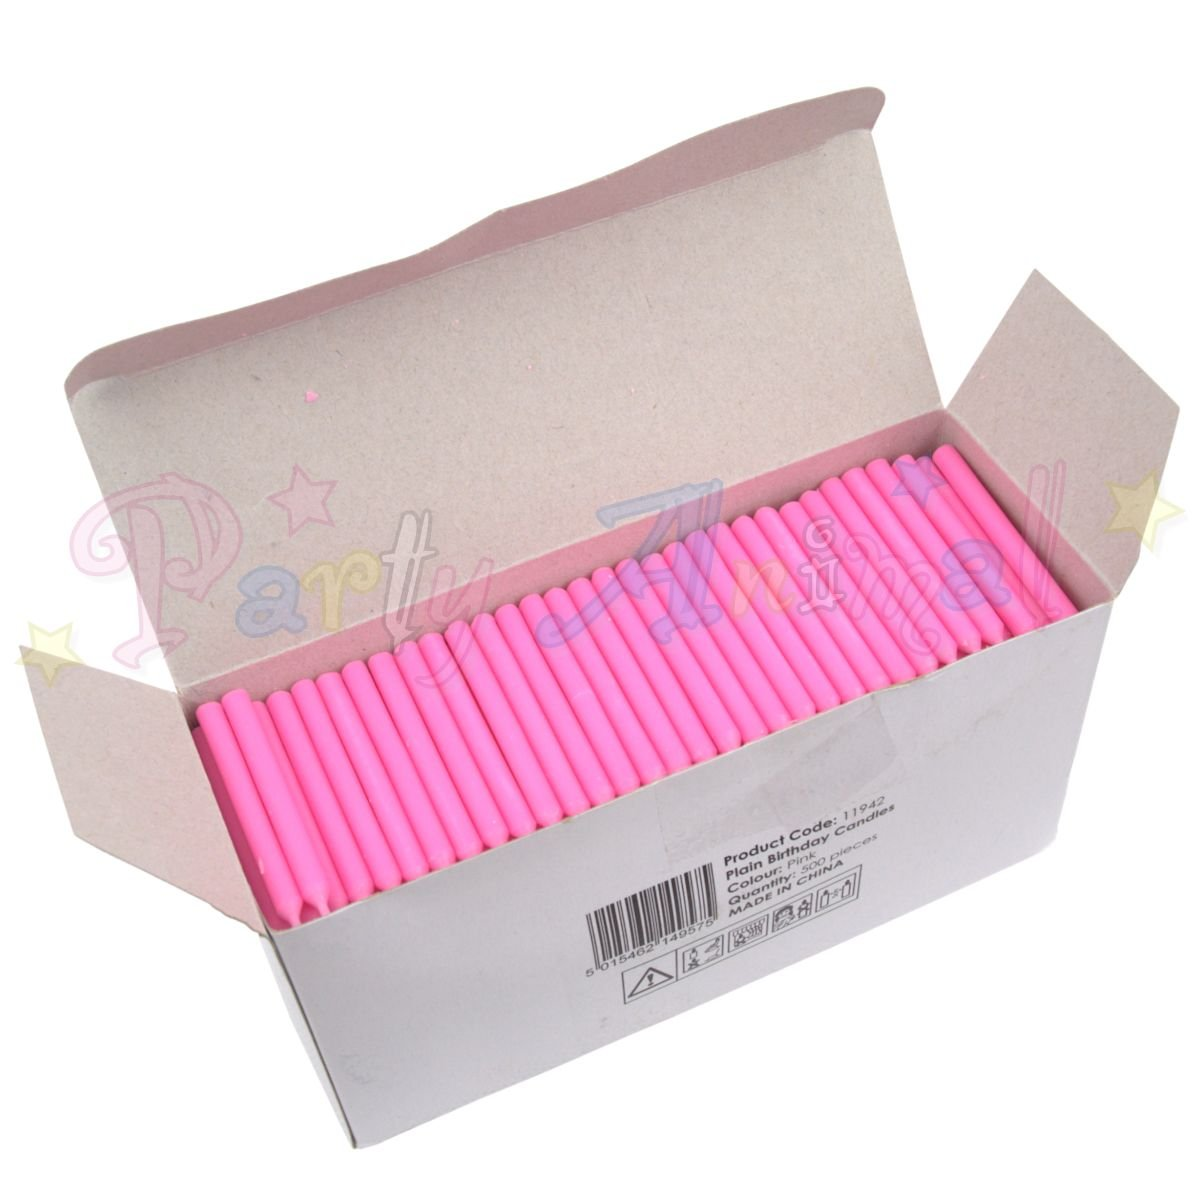 Bulk Pack of Plain Birthday Candles or Holders - Packs of 500 - Cake decoration accessories (Pink Candles)